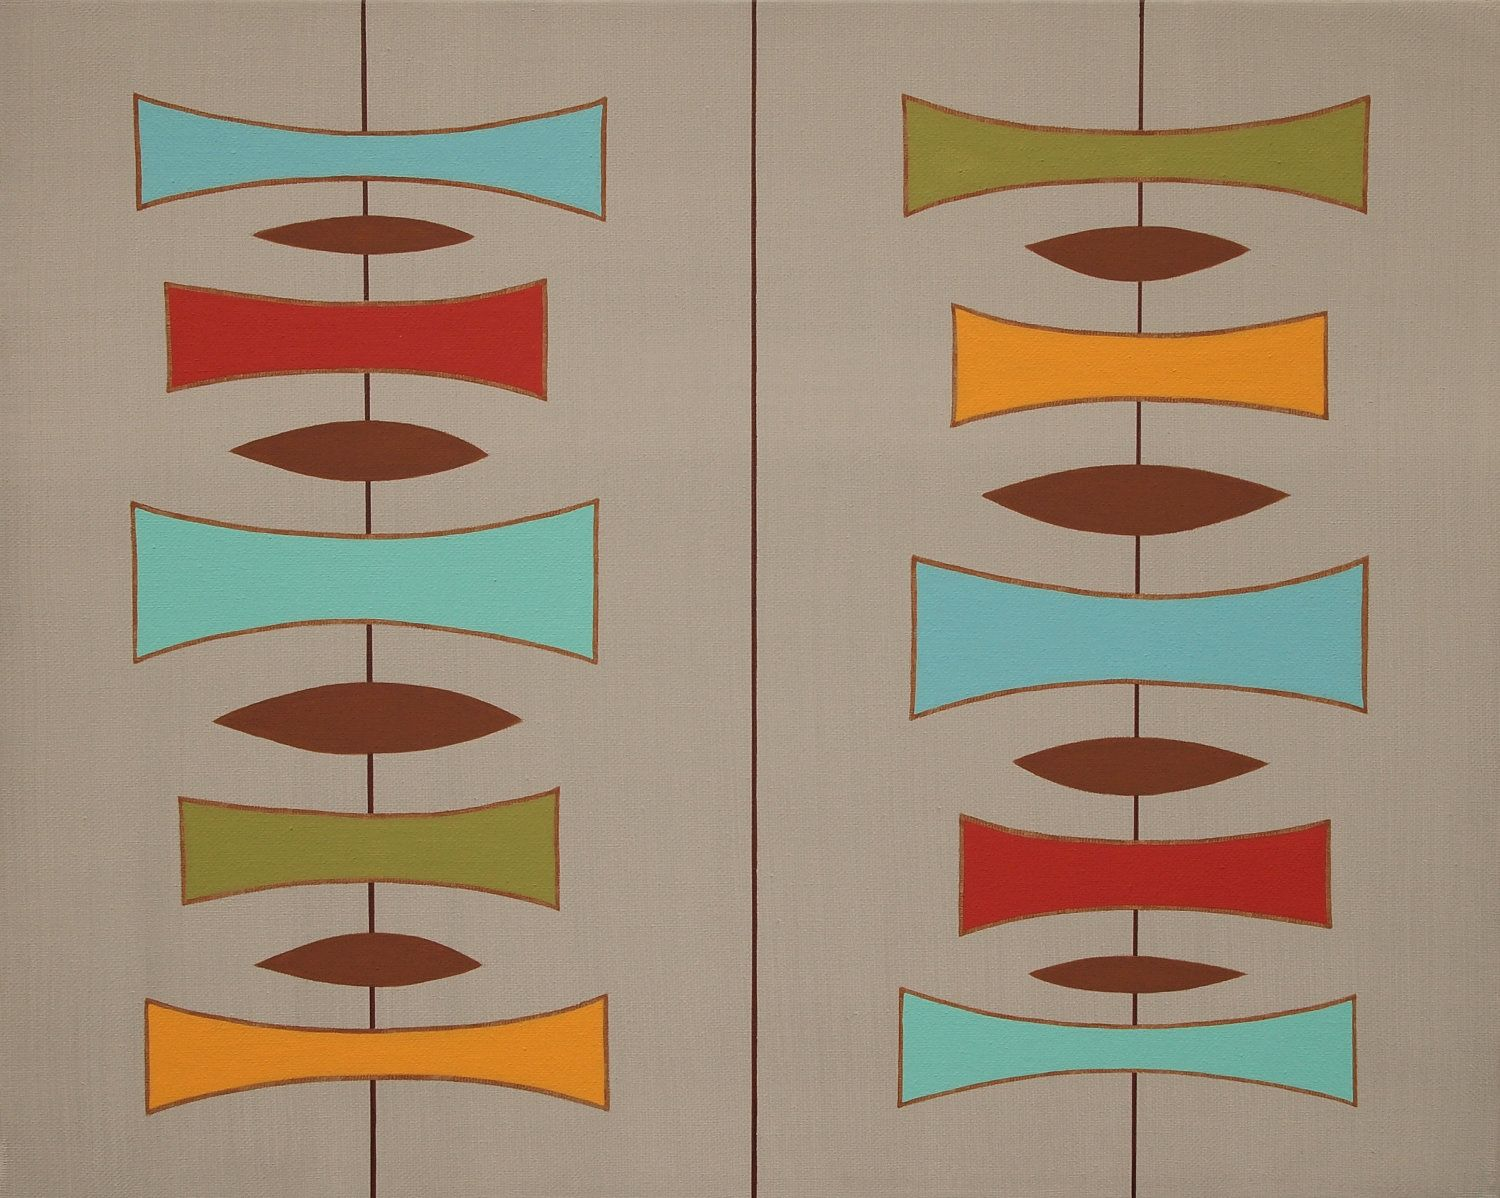 Mid Century Modern Art they've researched and done paint analysis on historic properties